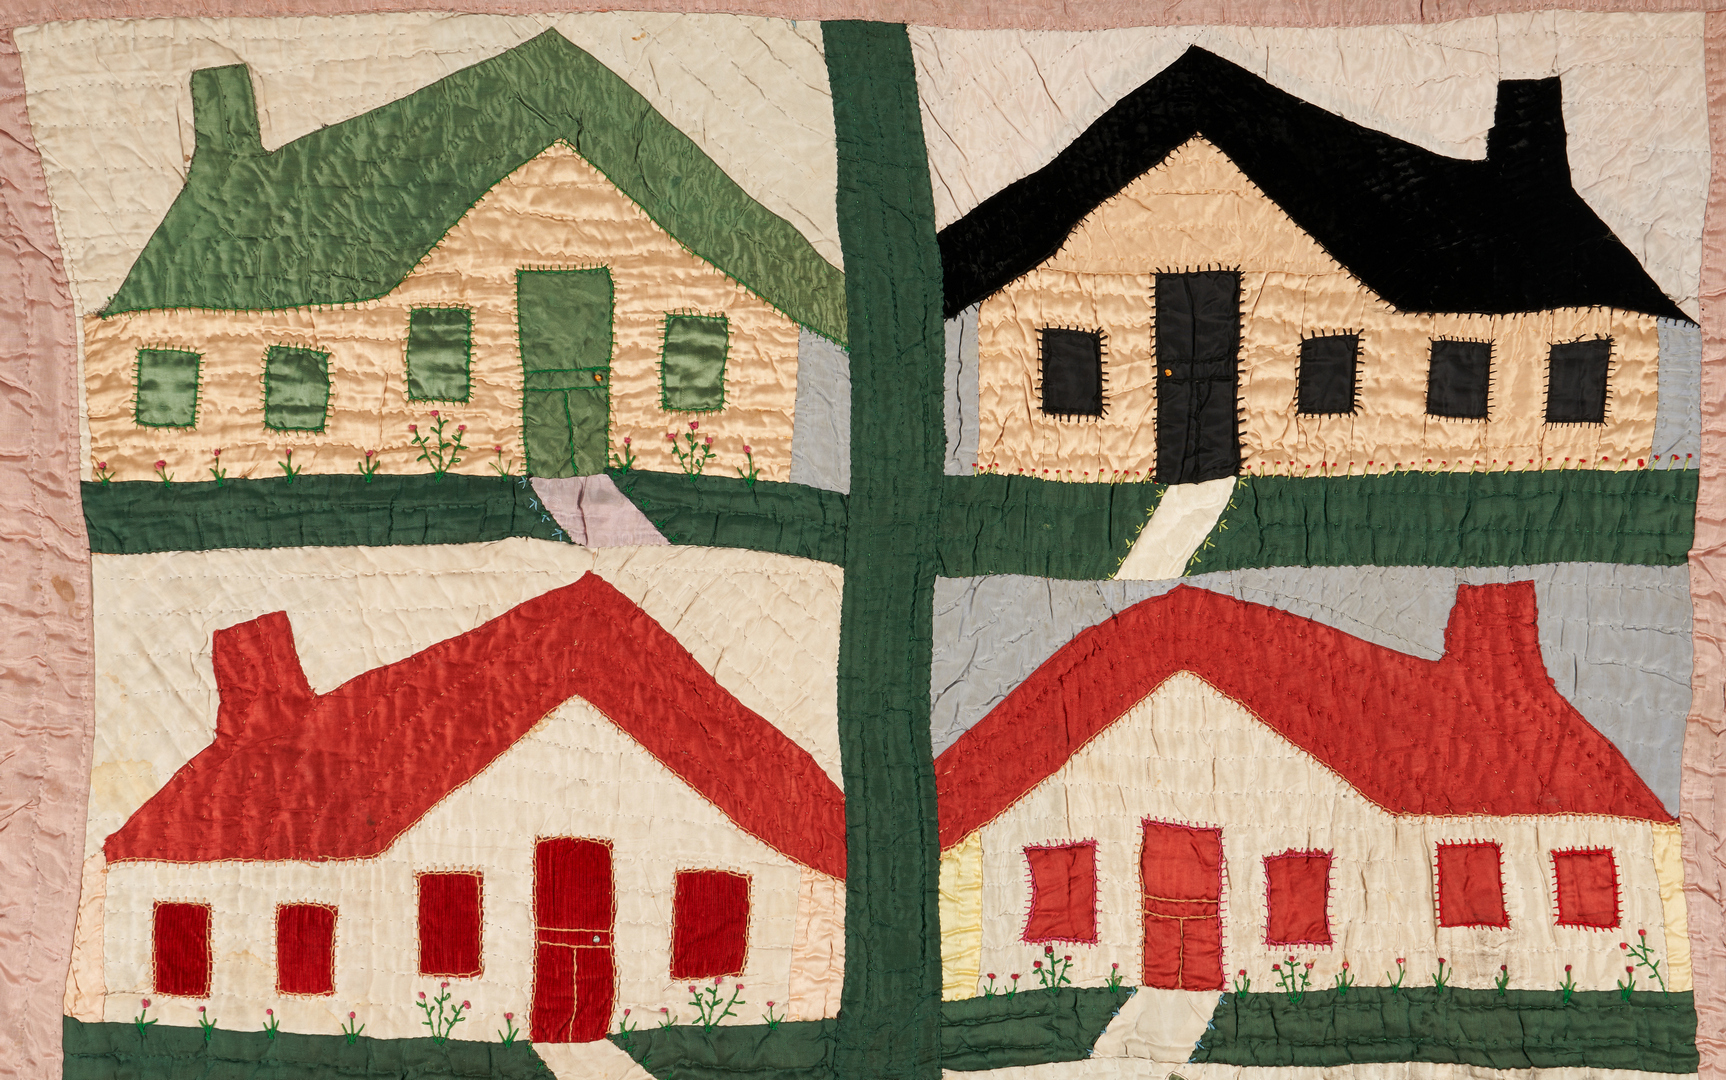 Lot 155: Exhibited African-American Schoolhouse Quilt